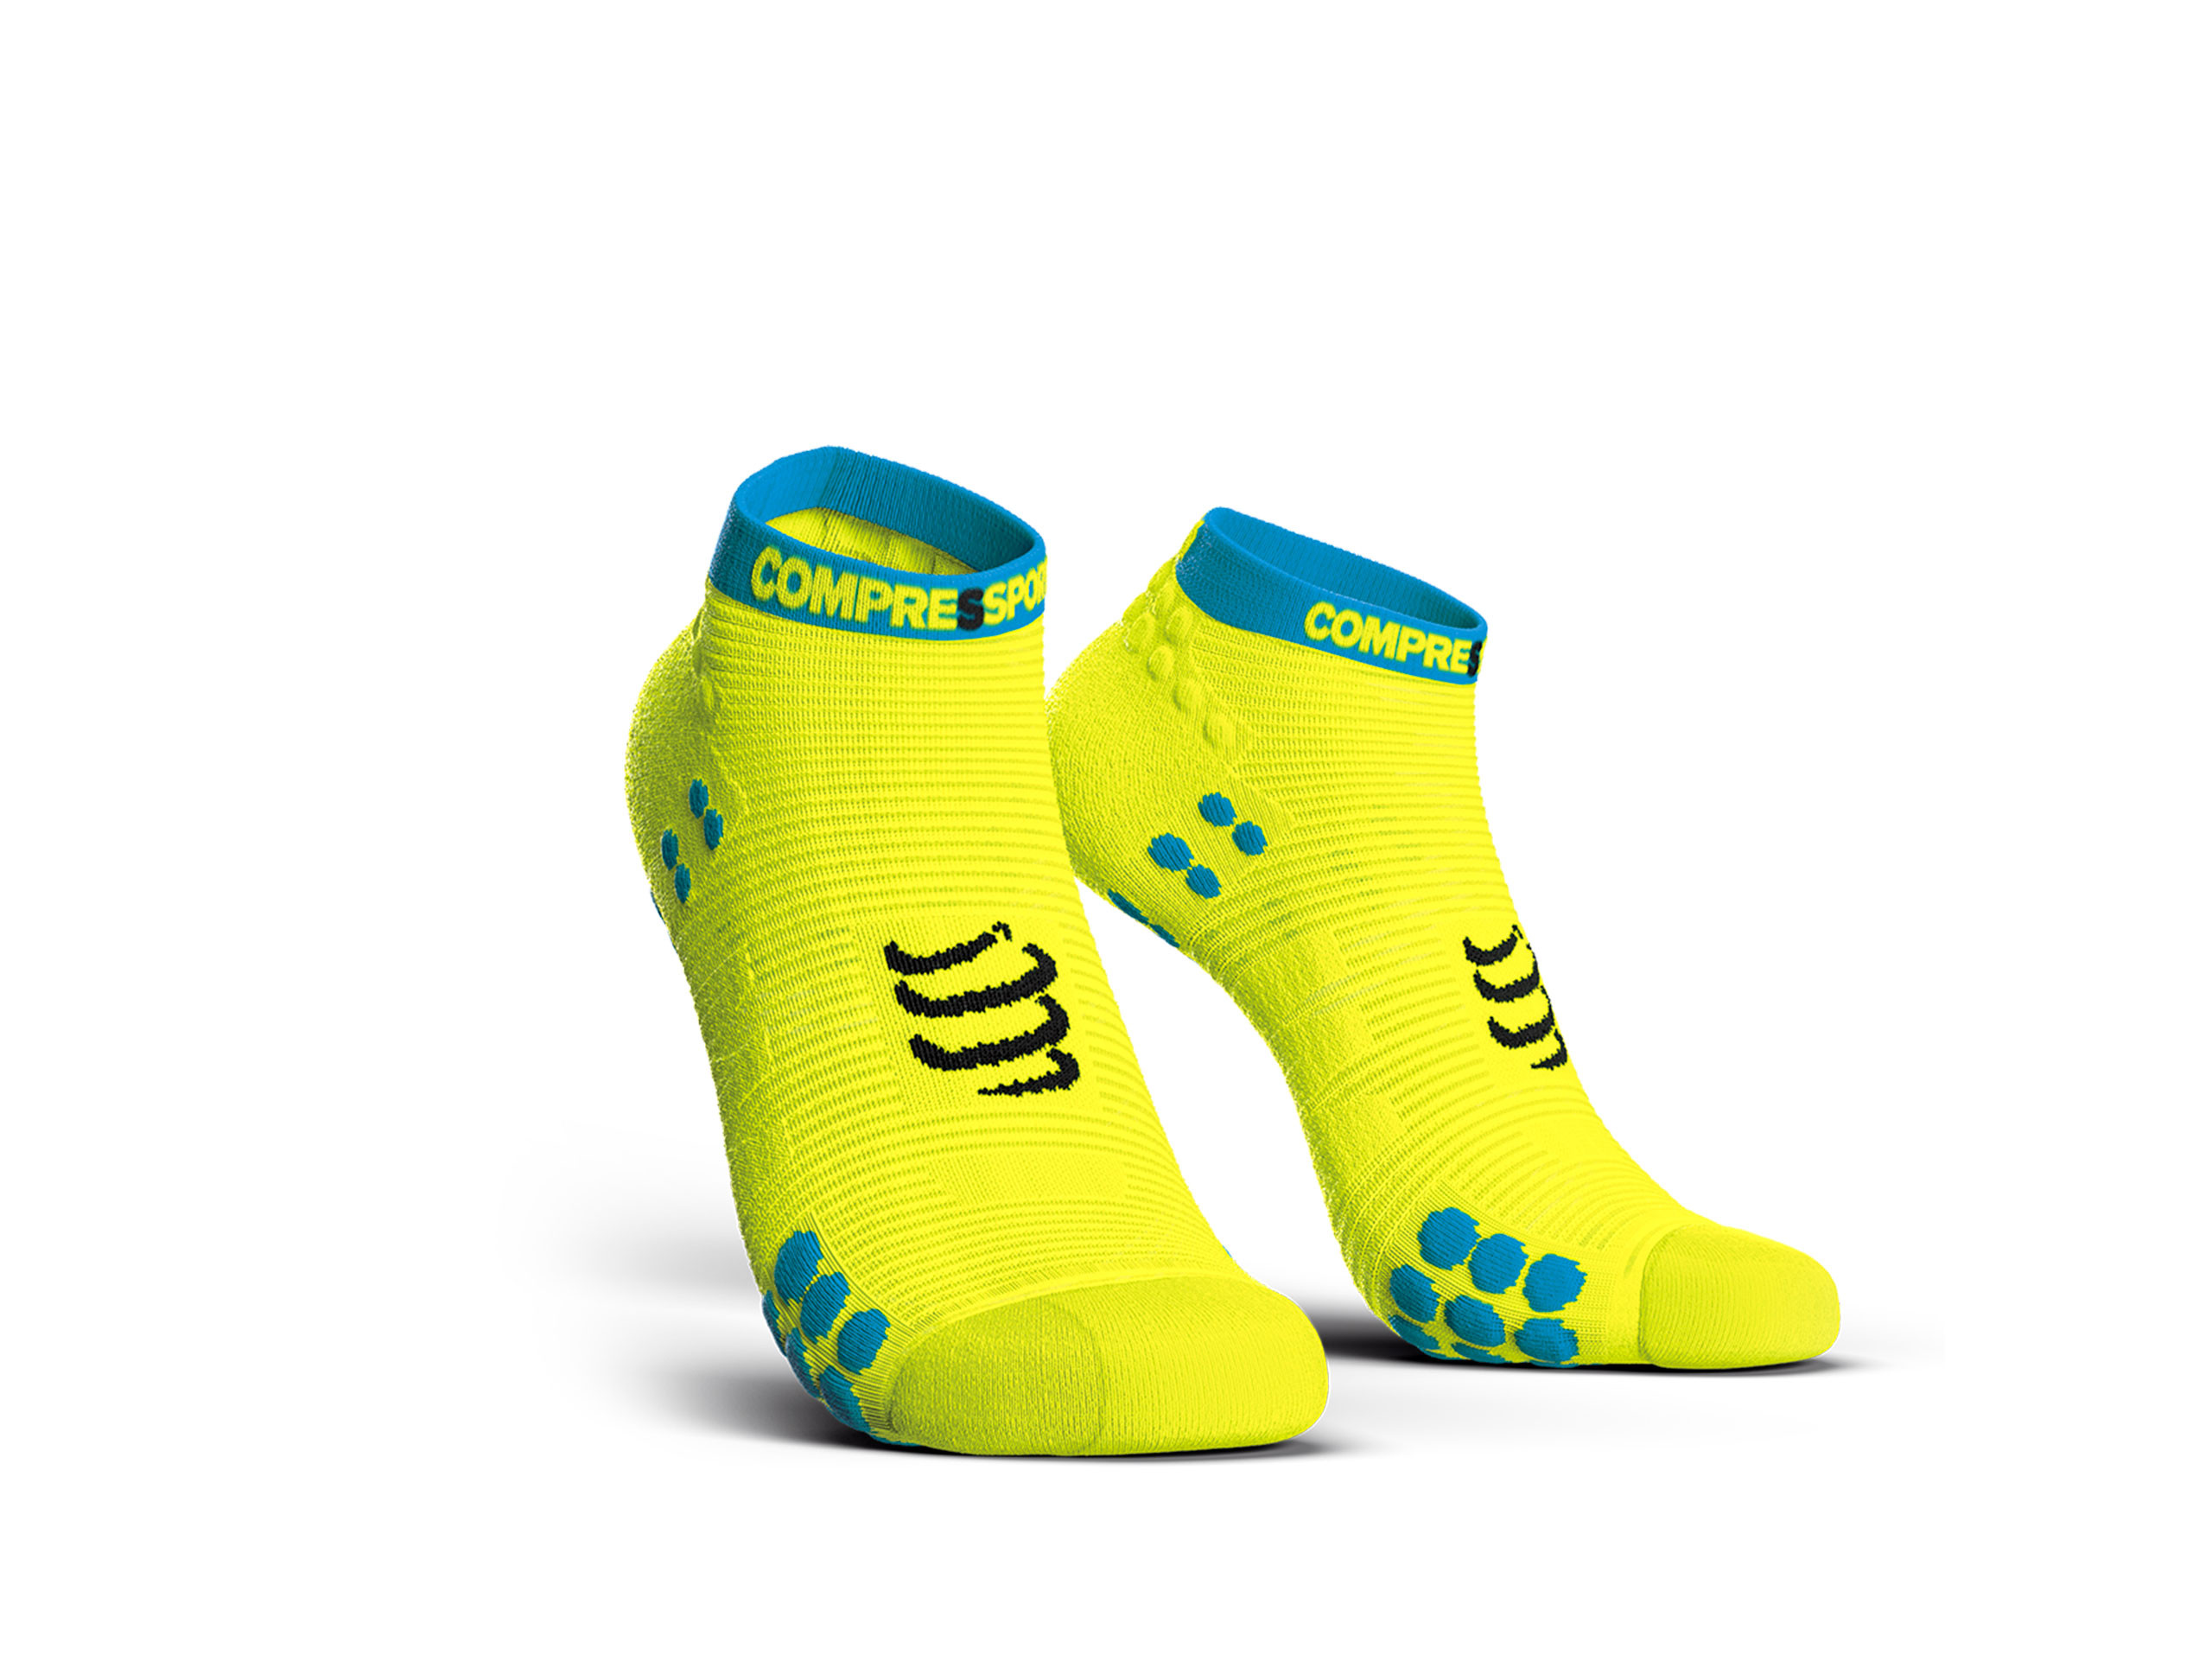 Calcetines deportivos pro v3.0 Run Low amarillo flúor